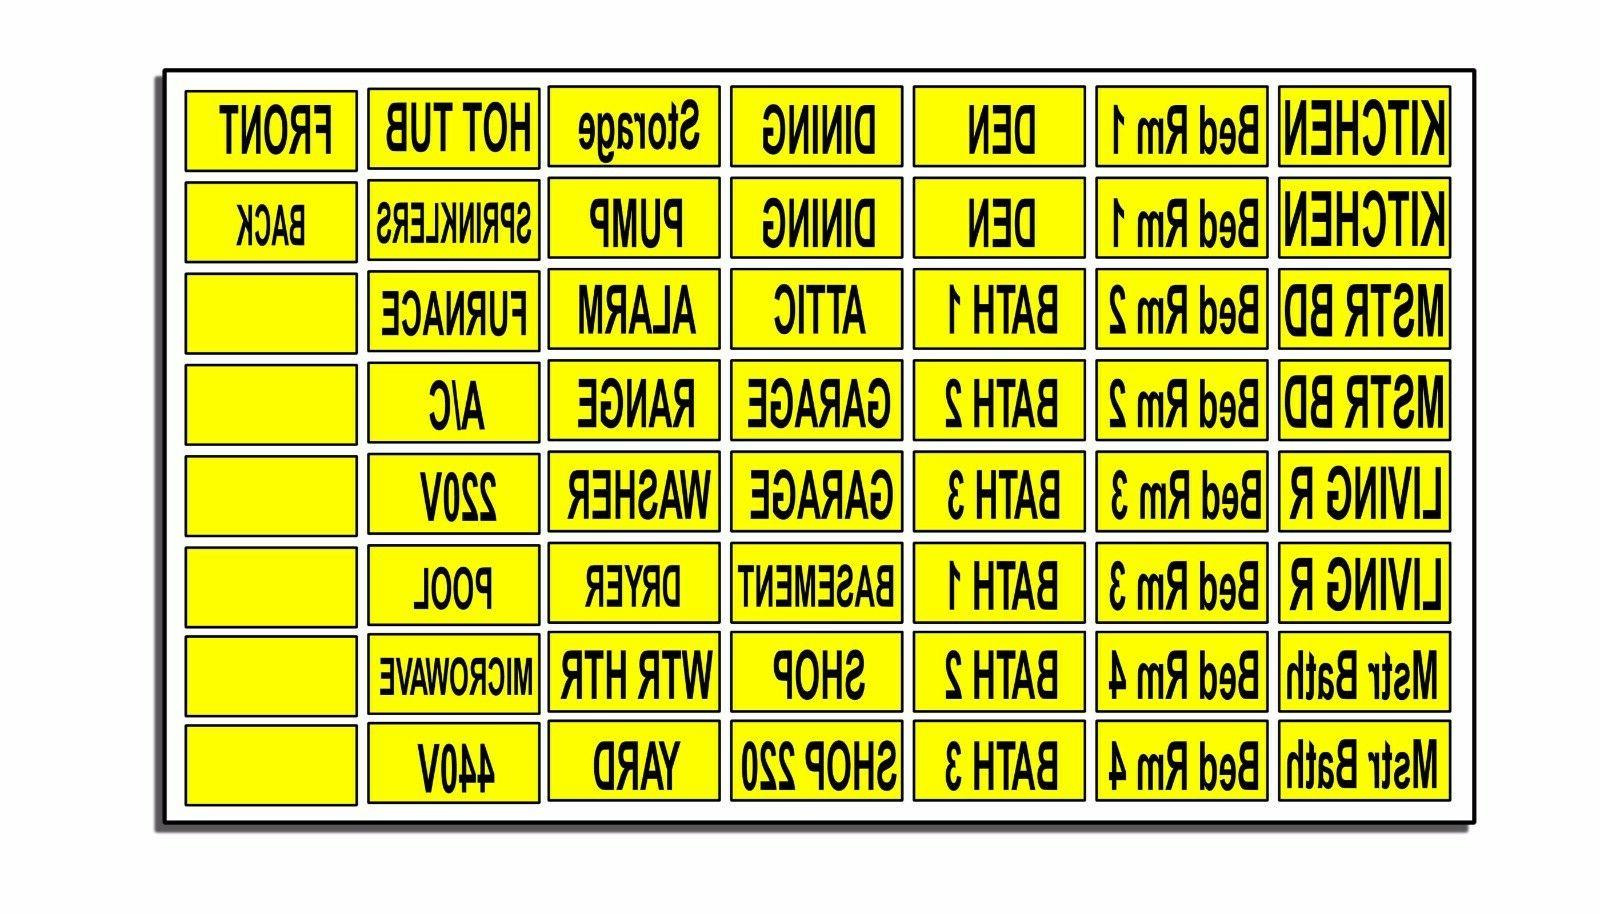 circuit breaker labels stickers for home